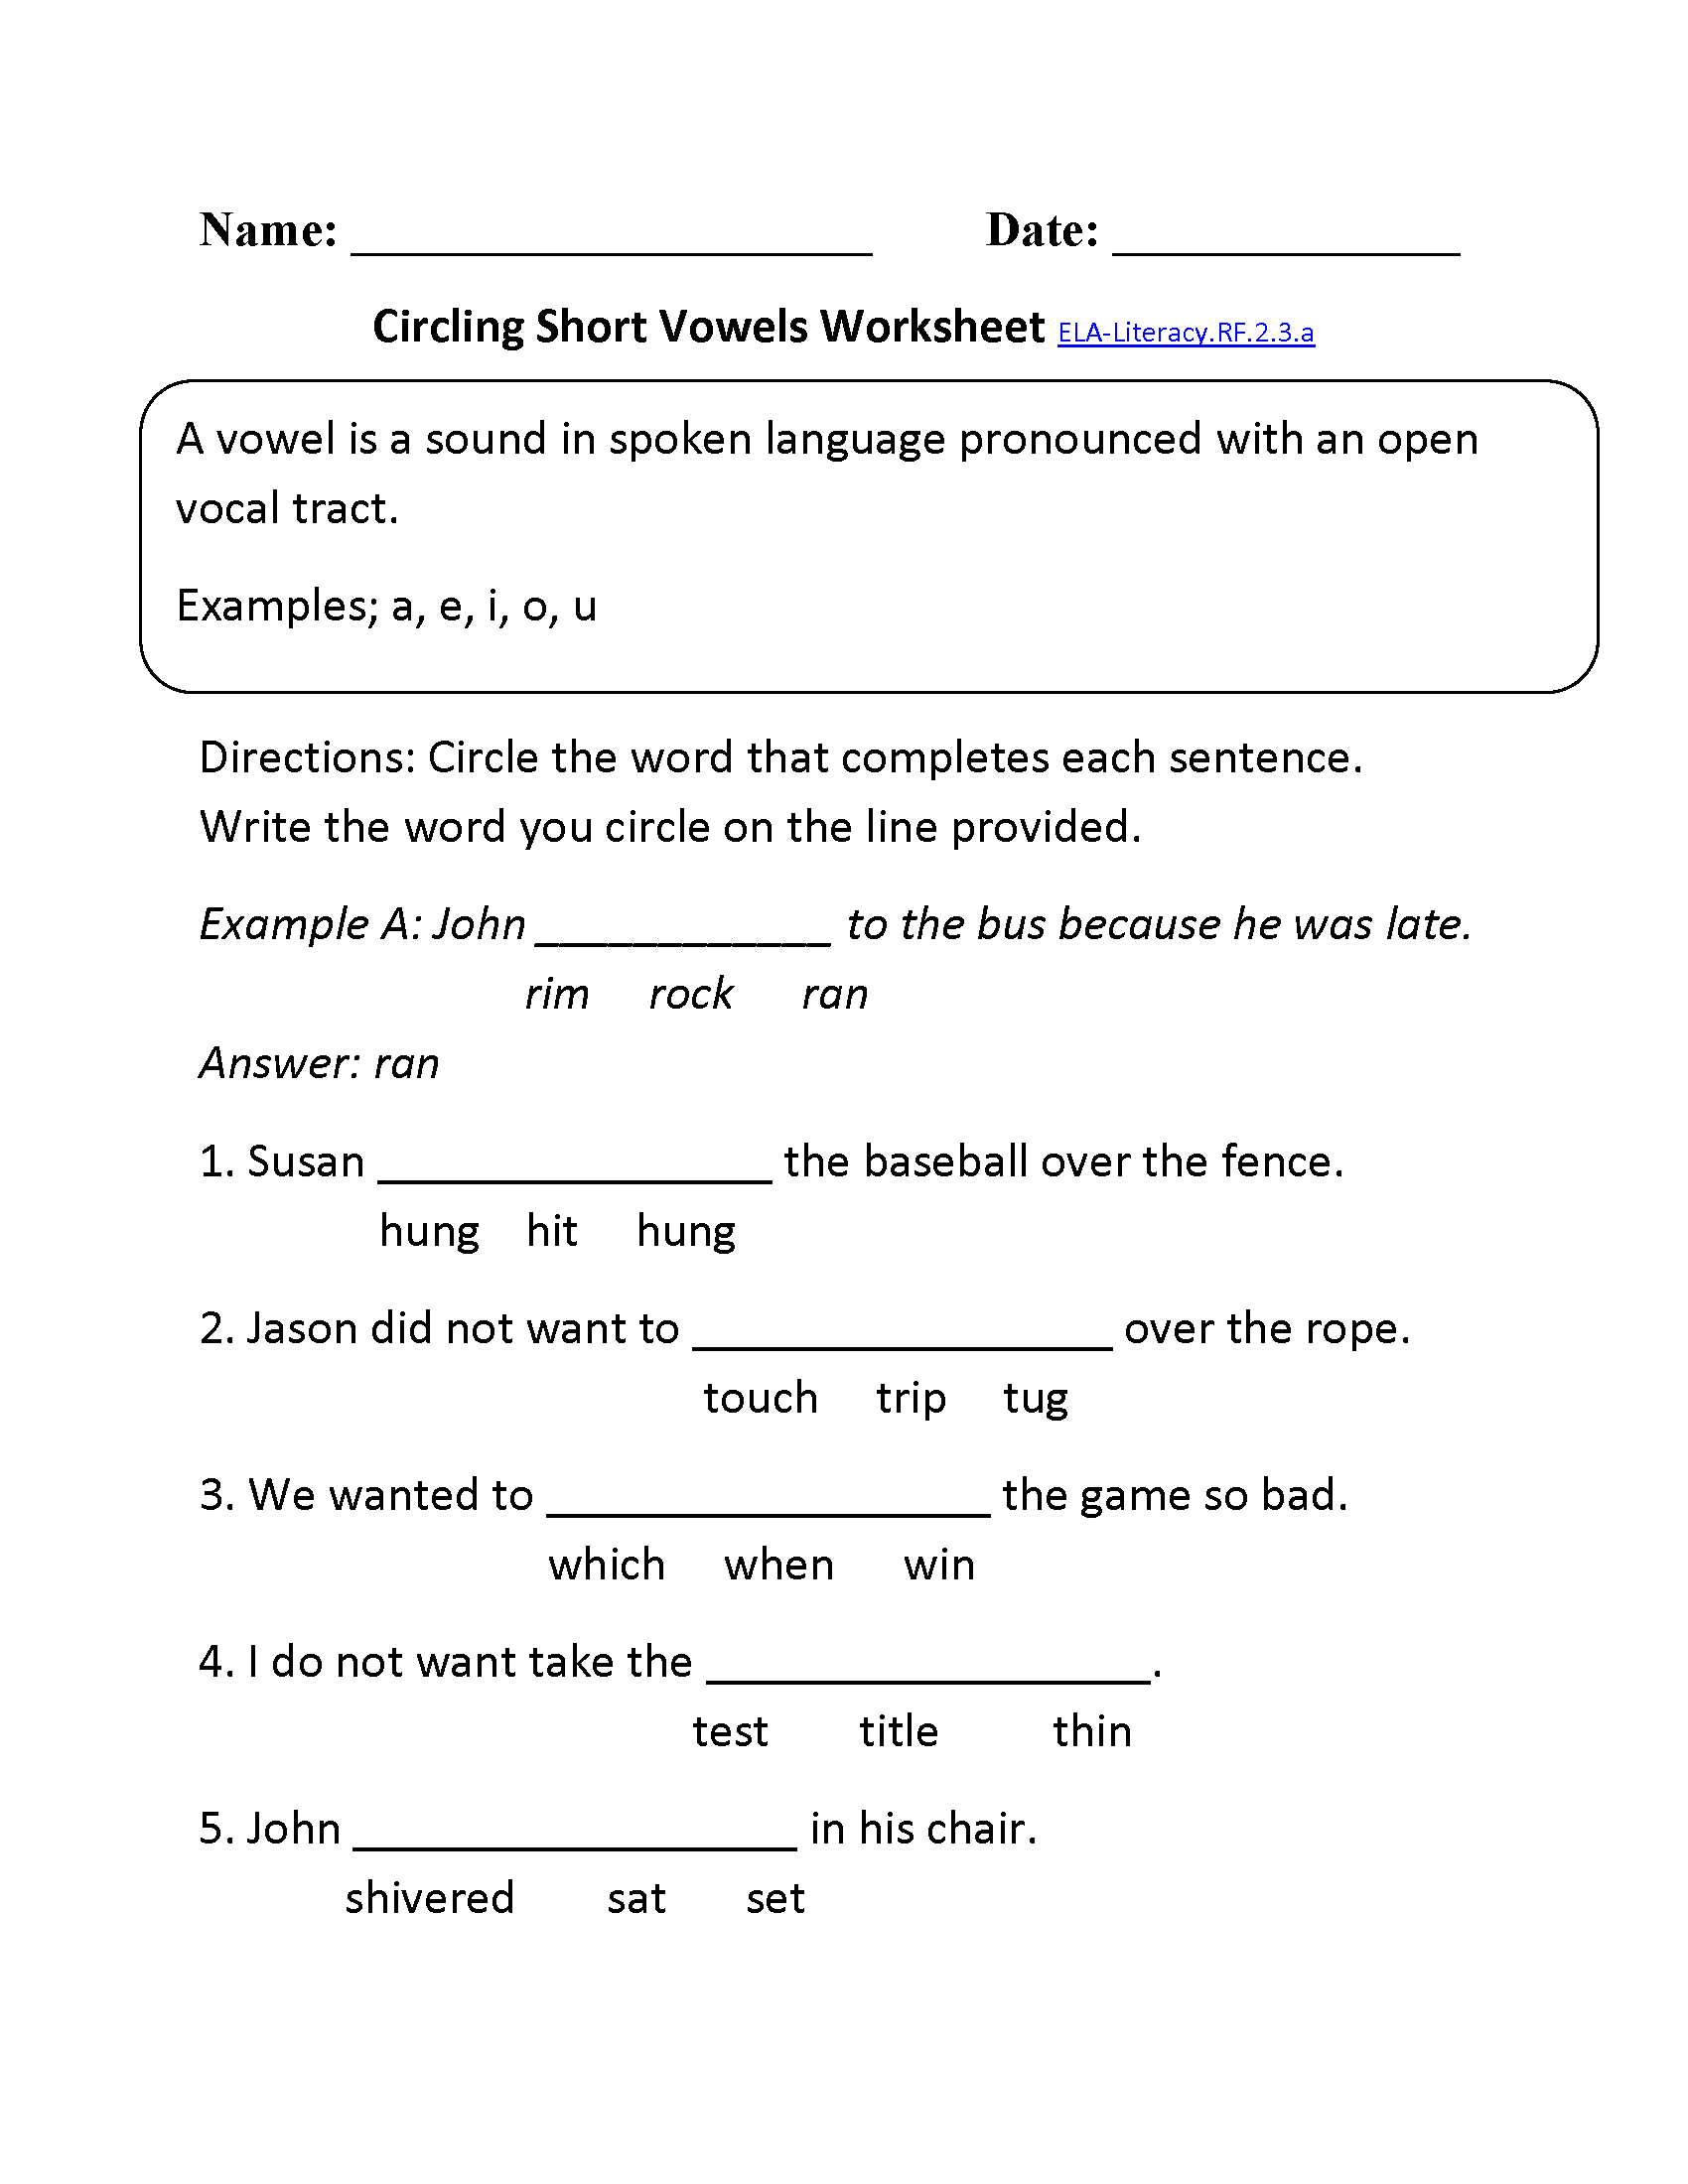 Worksheet Reading For 2nd Grade 2nd grade common core reading foundational skills worksheets skills